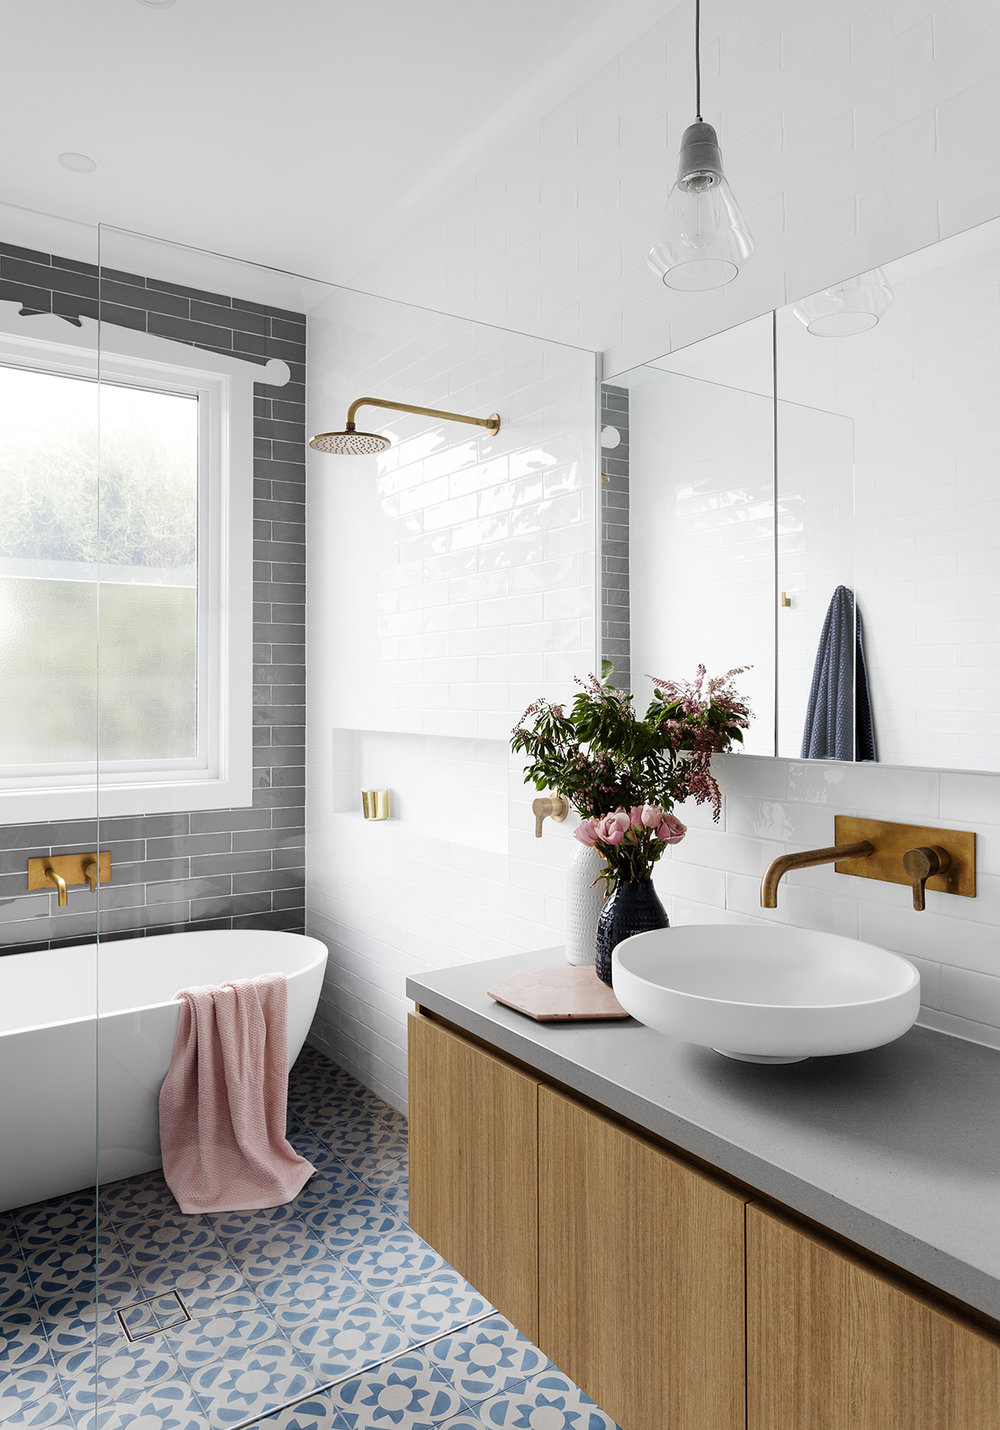 Top 5 Bathroom Trends for 2017 — Adore Home Magazine